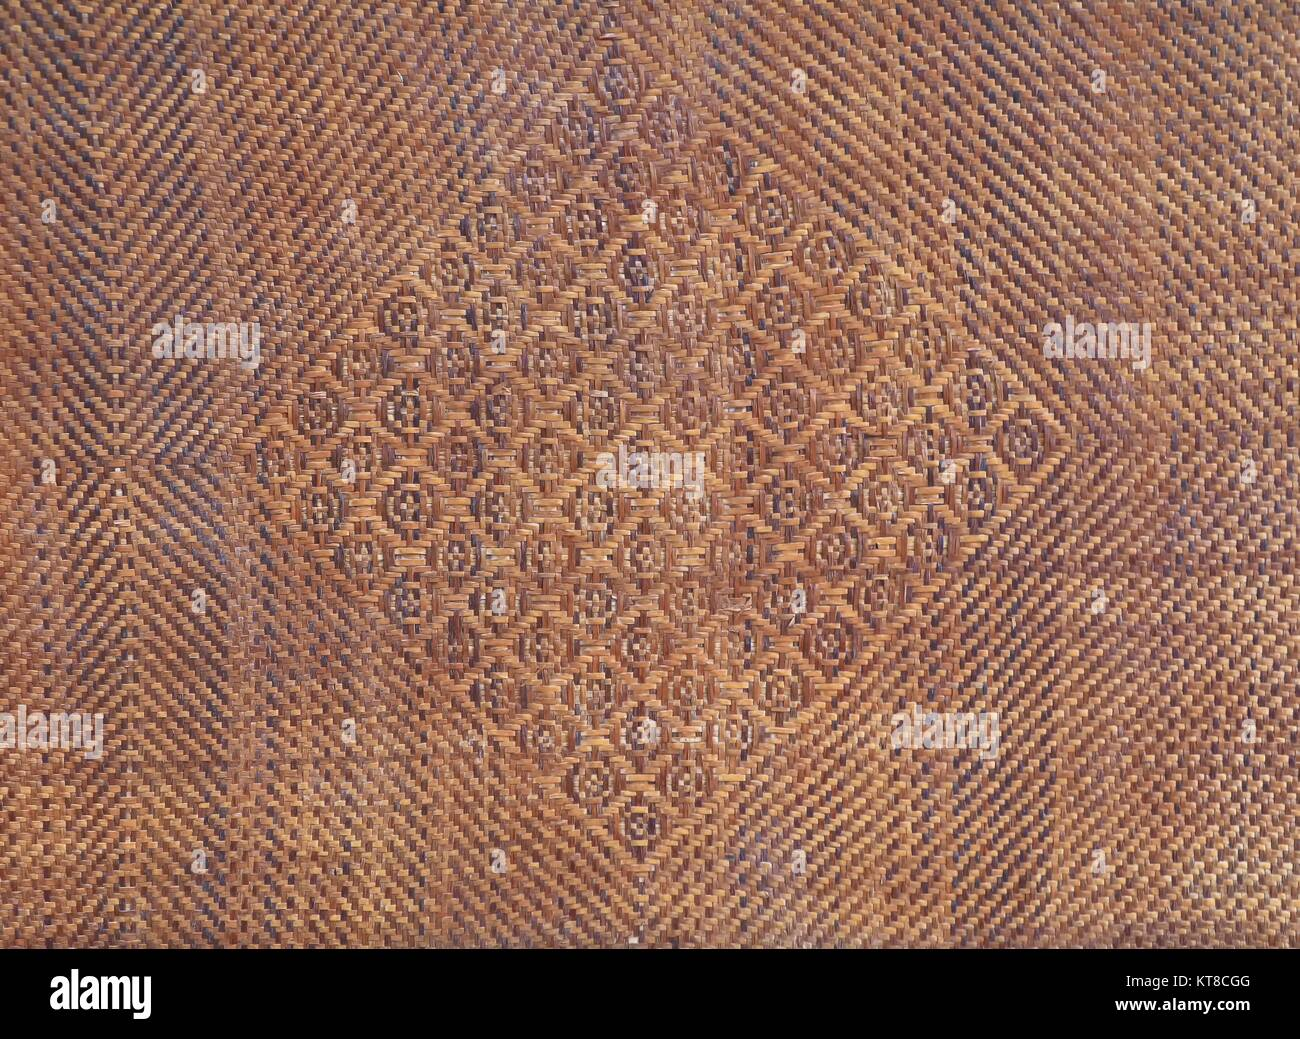 Bamboo Weave  texture ancient pattern thai style   background and space for add text Stock Photo